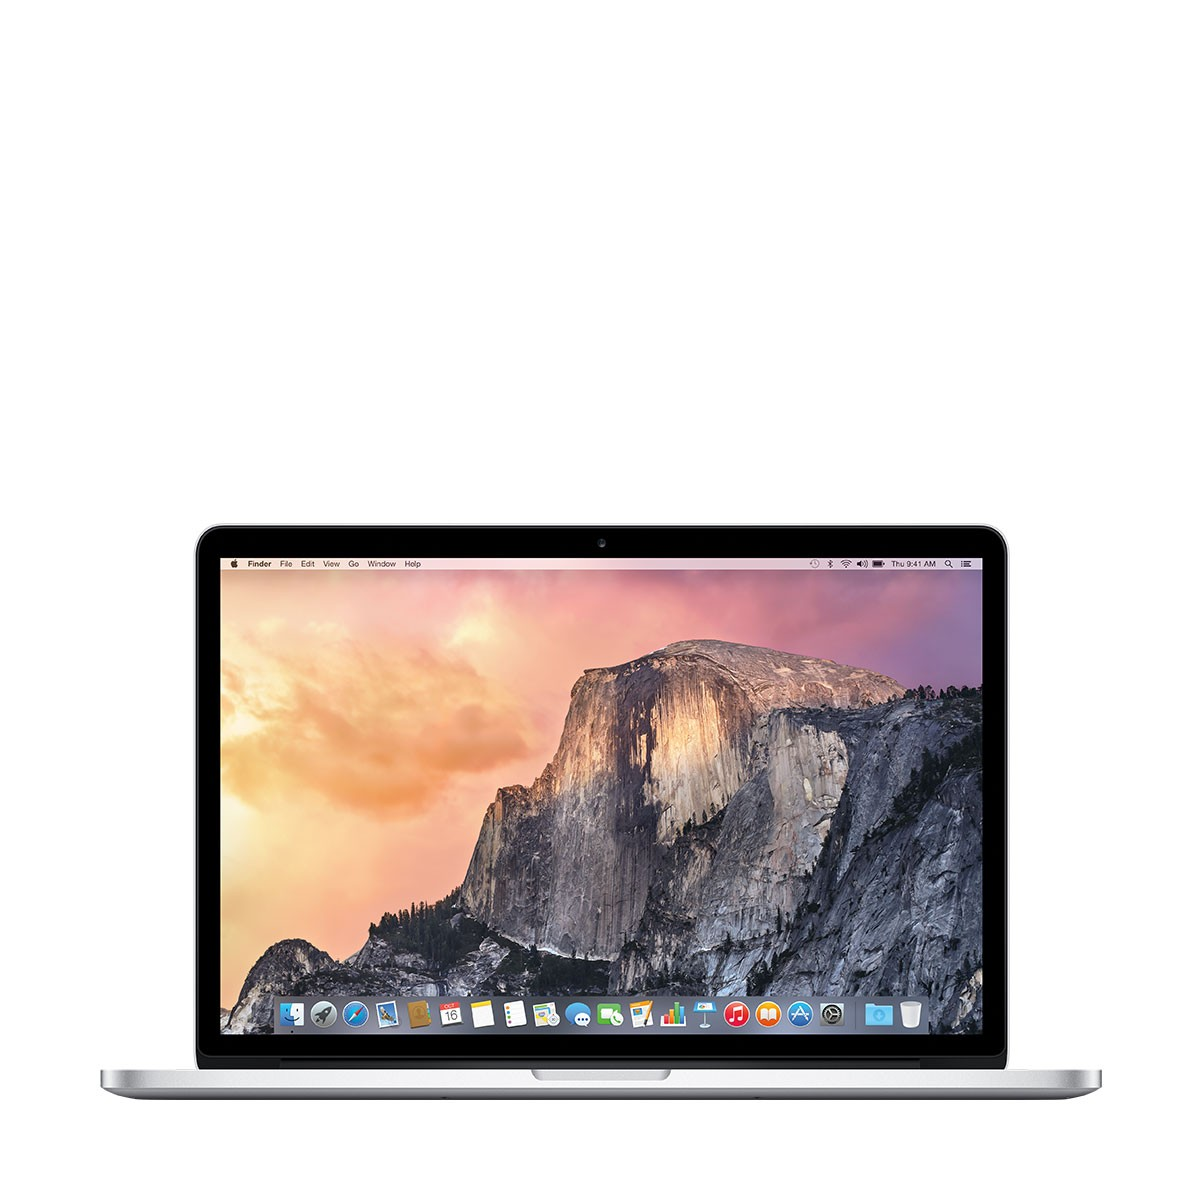 "MacBook Pro 15"" Retina Display 2.2 GHz i7 (2015)"